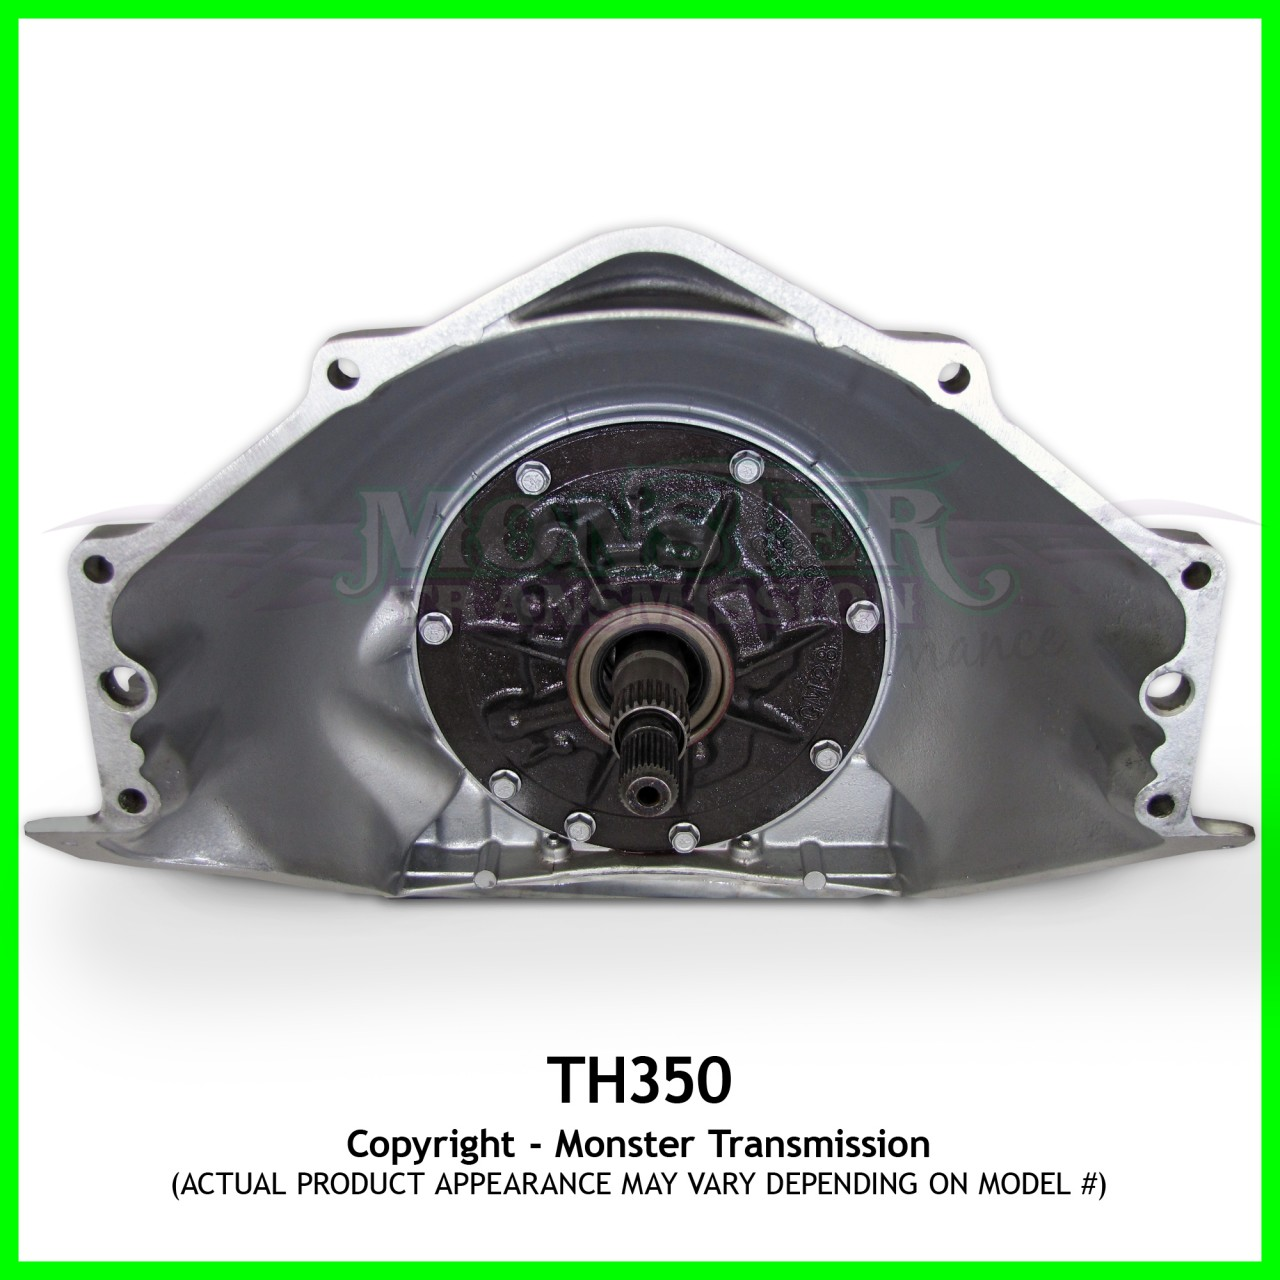 "Torque Converter Replacement >> Turbo 350 TH350 Transmission Mild : 6"" Tail, Rebuilt TH350 Transmission, TH-350, Rebuilt Turbo ..."